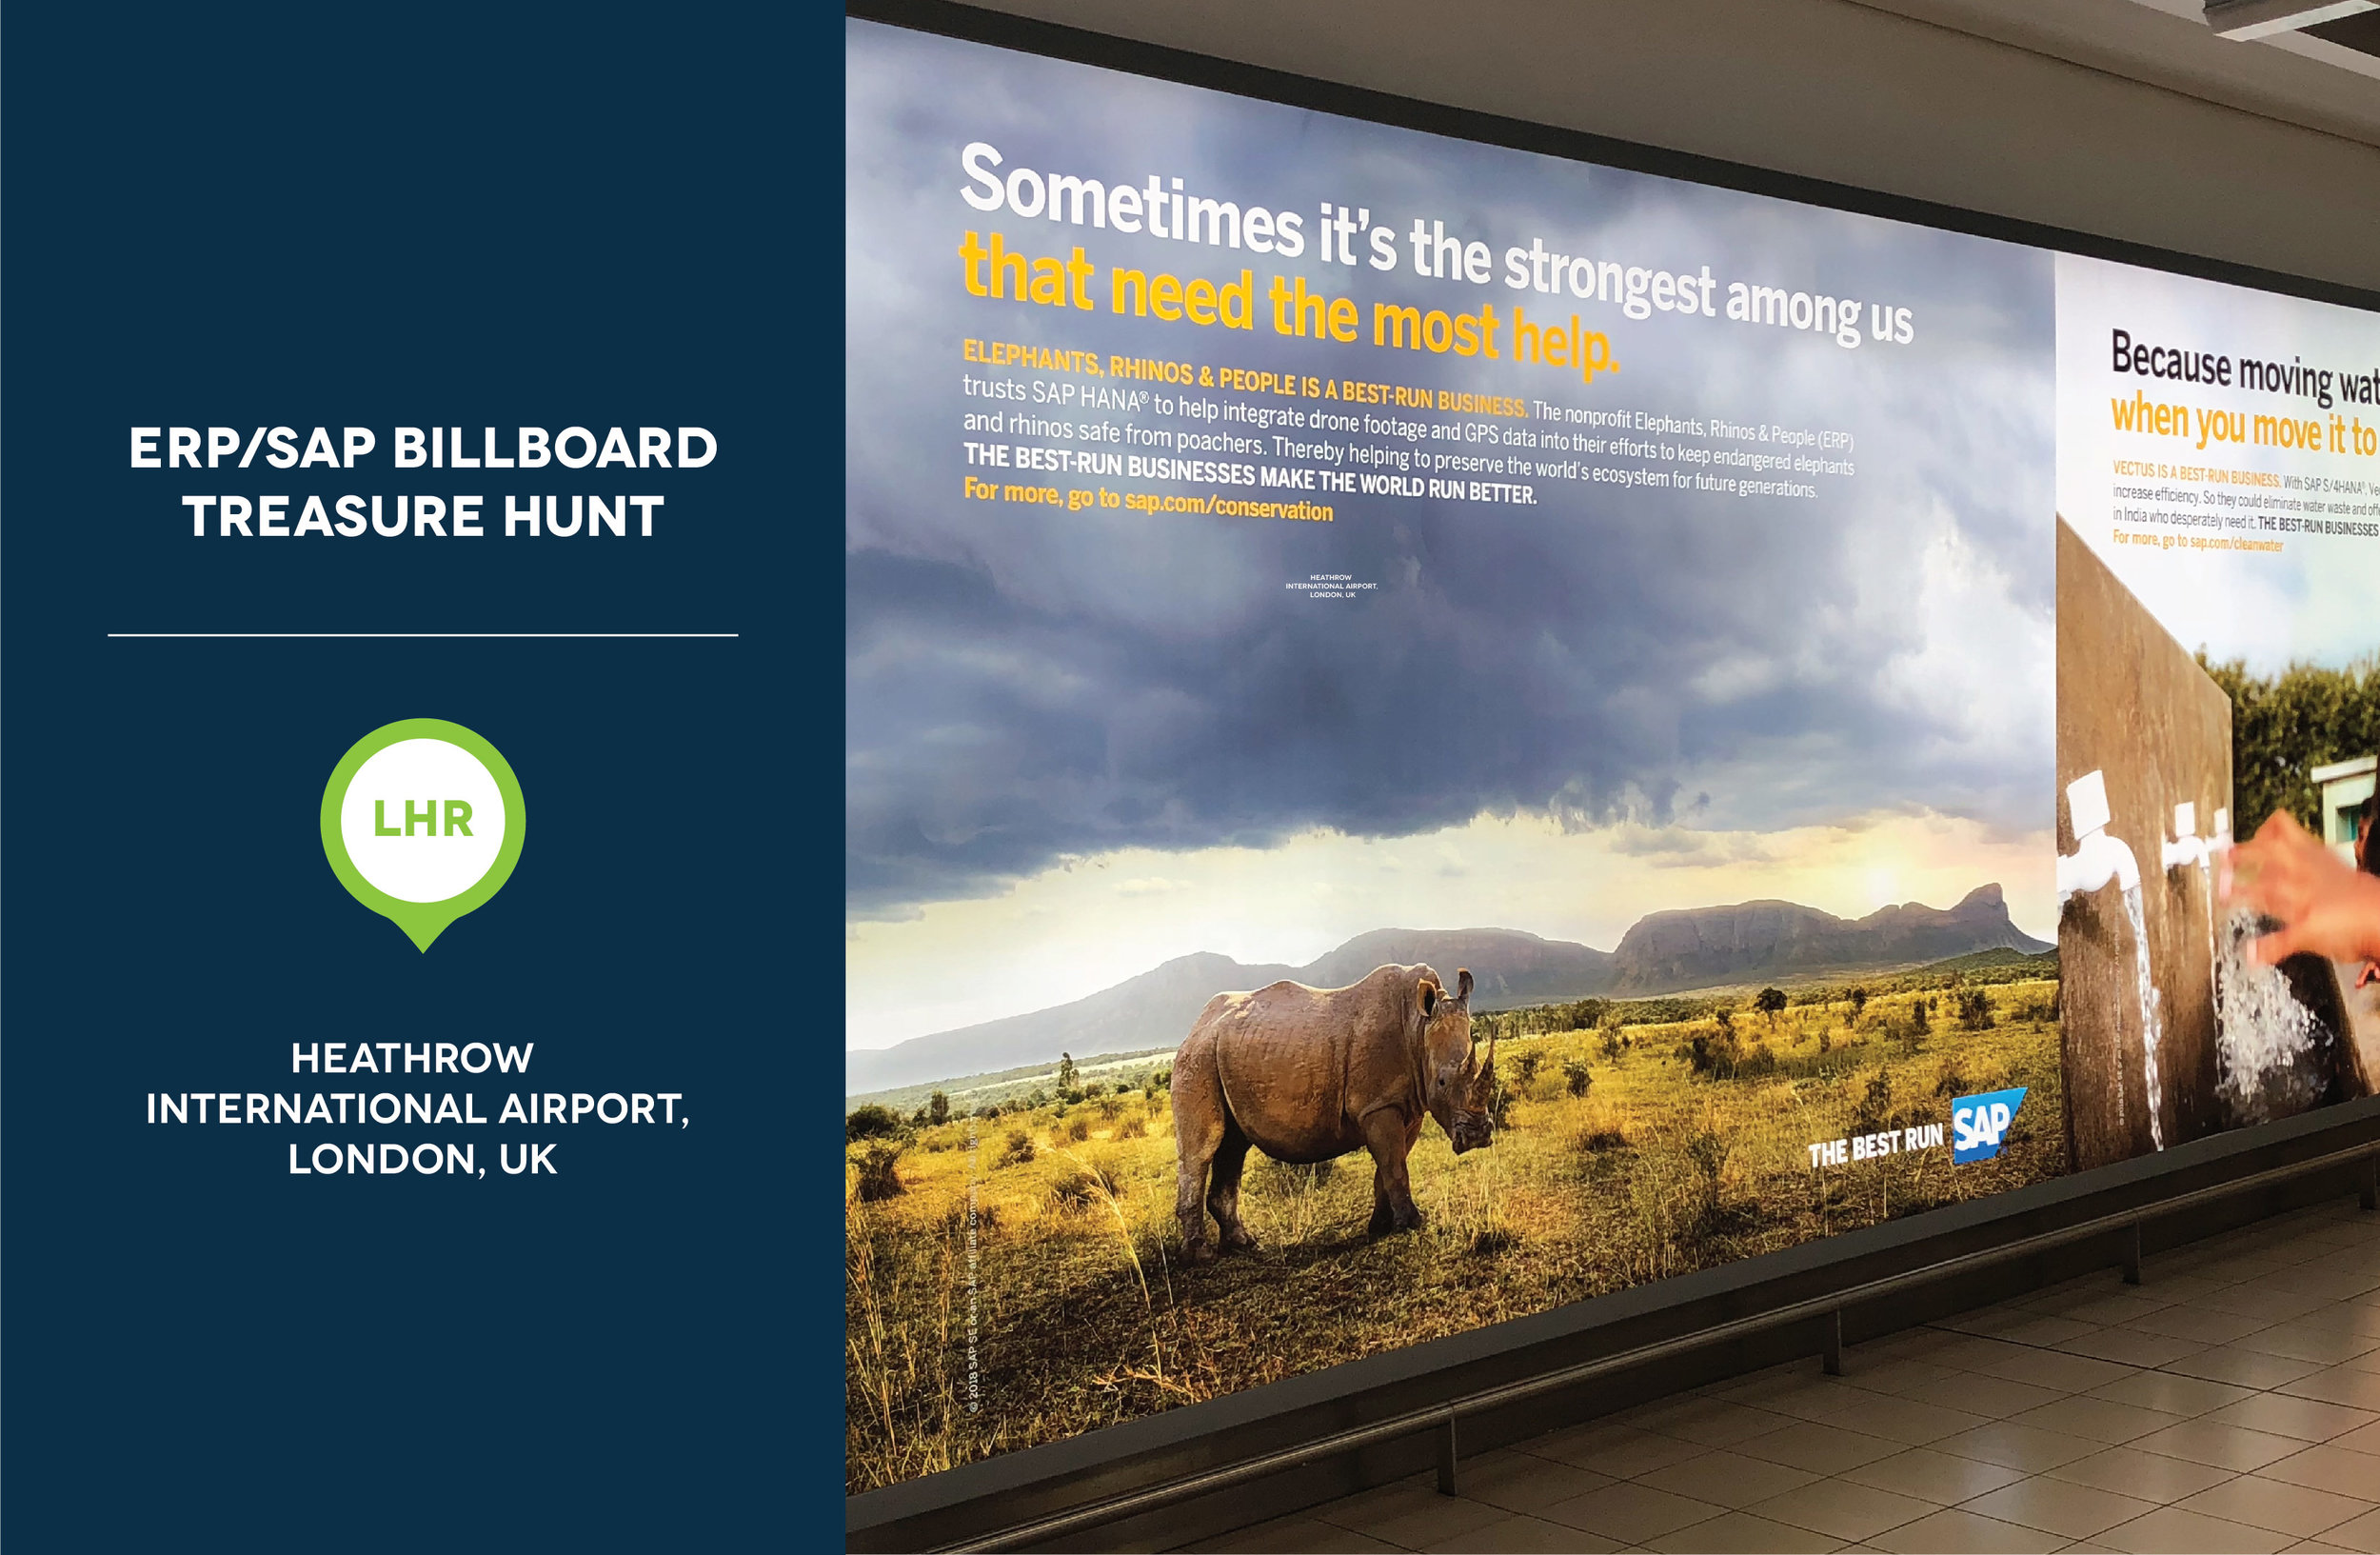 The third sighting was at Heathrow International Airport